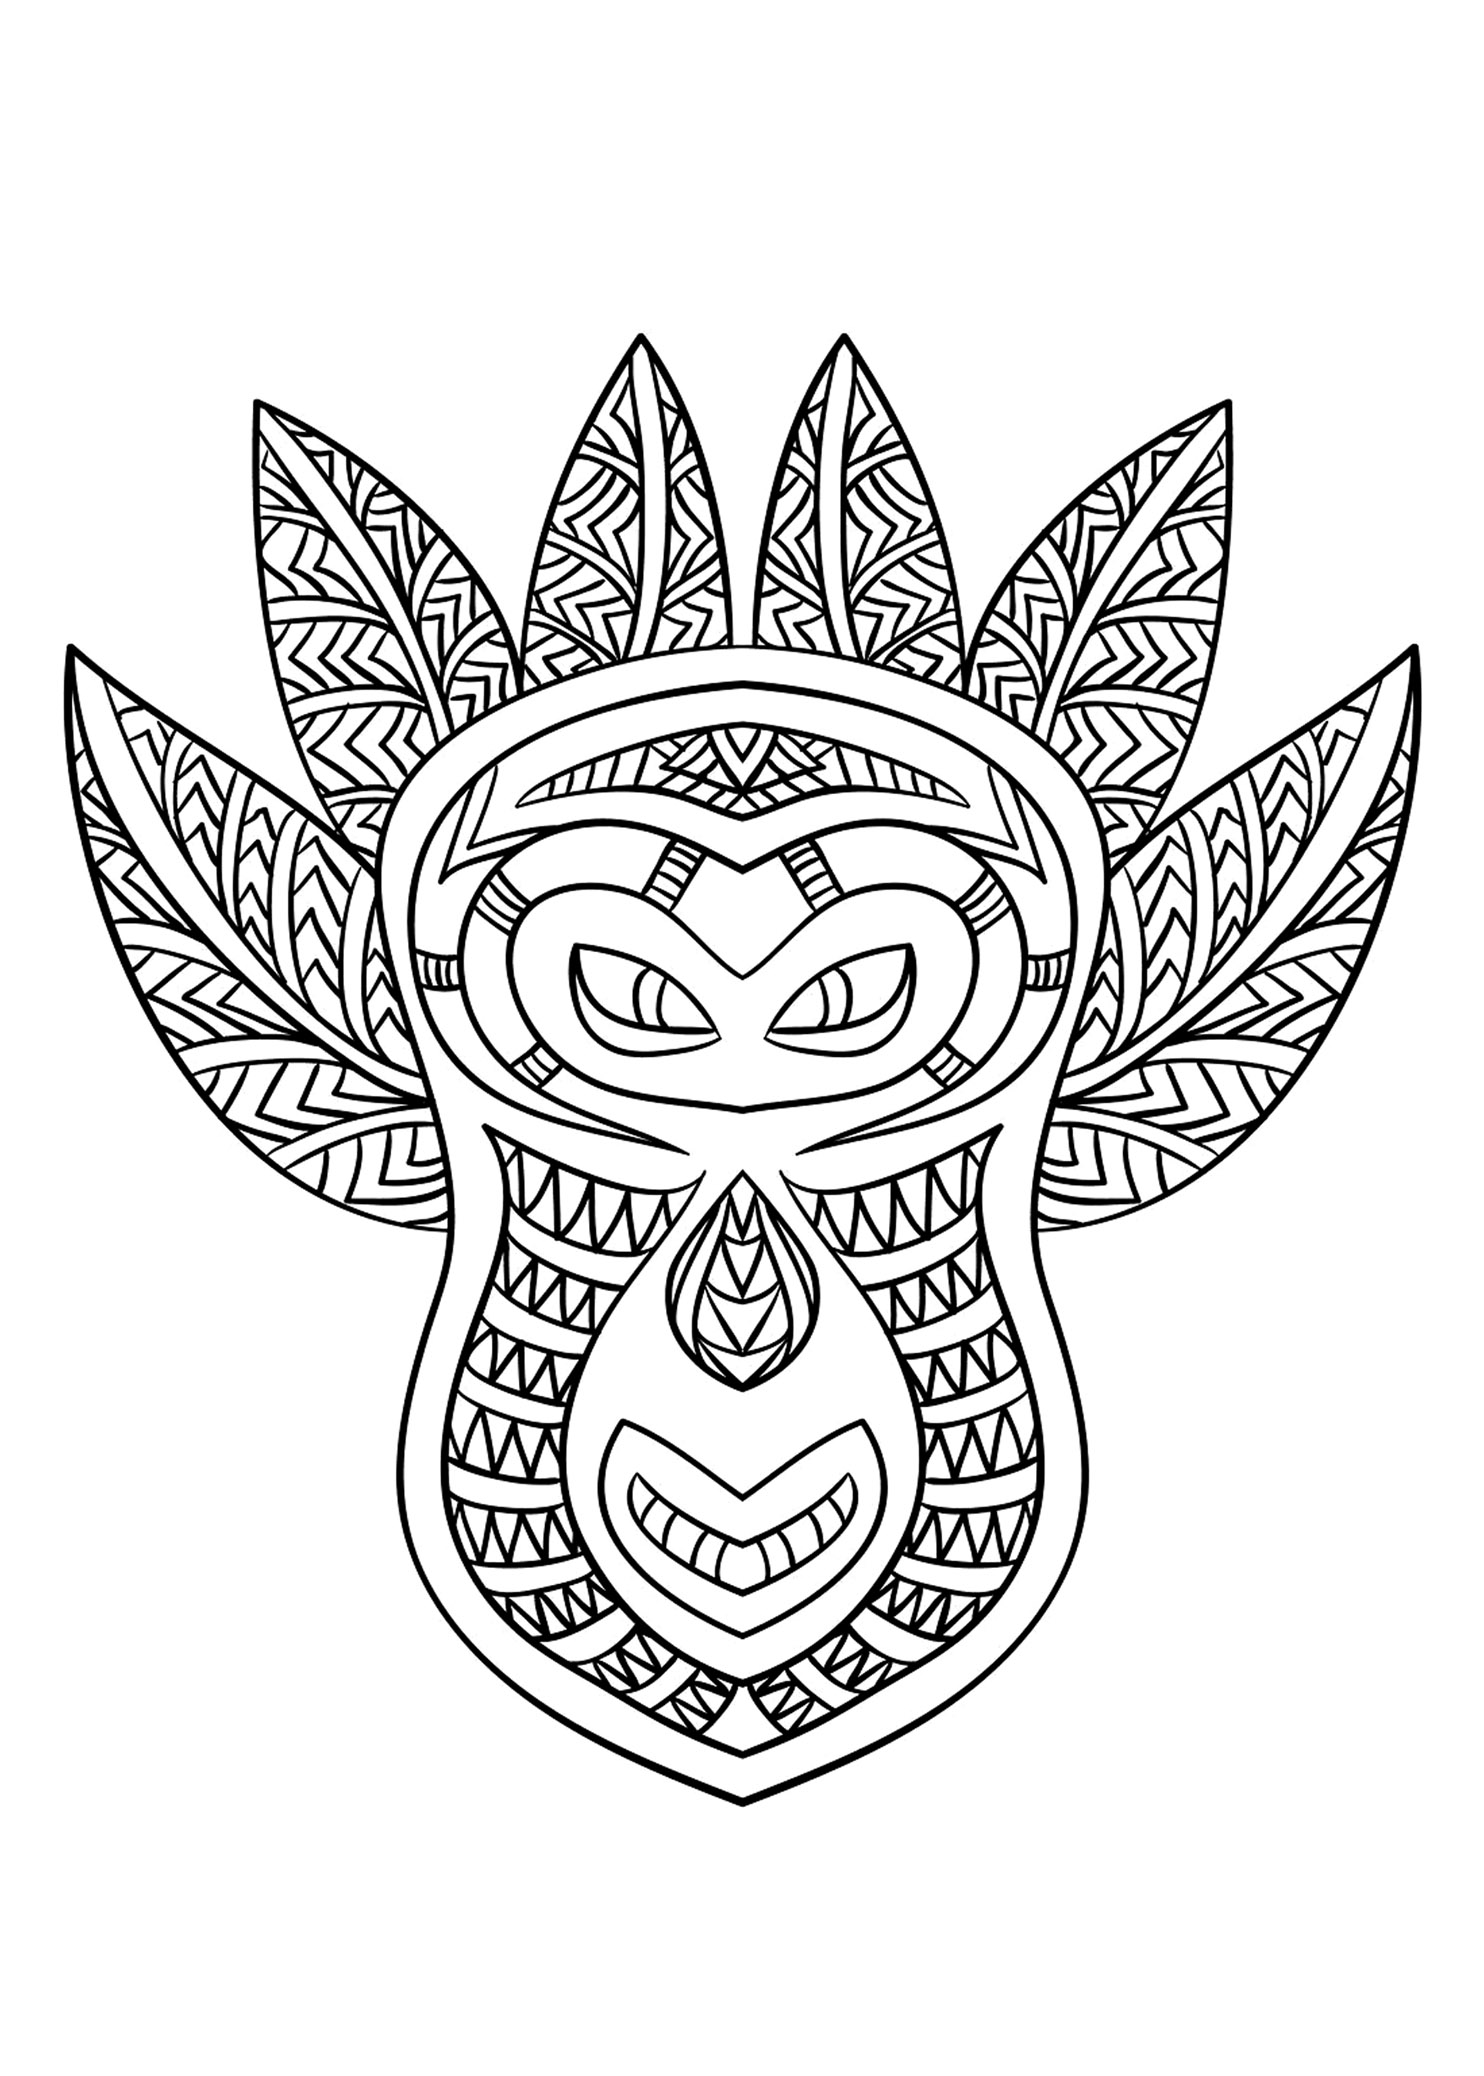 African mask 6 - Africa Adult Coloring Pages - Page 2/